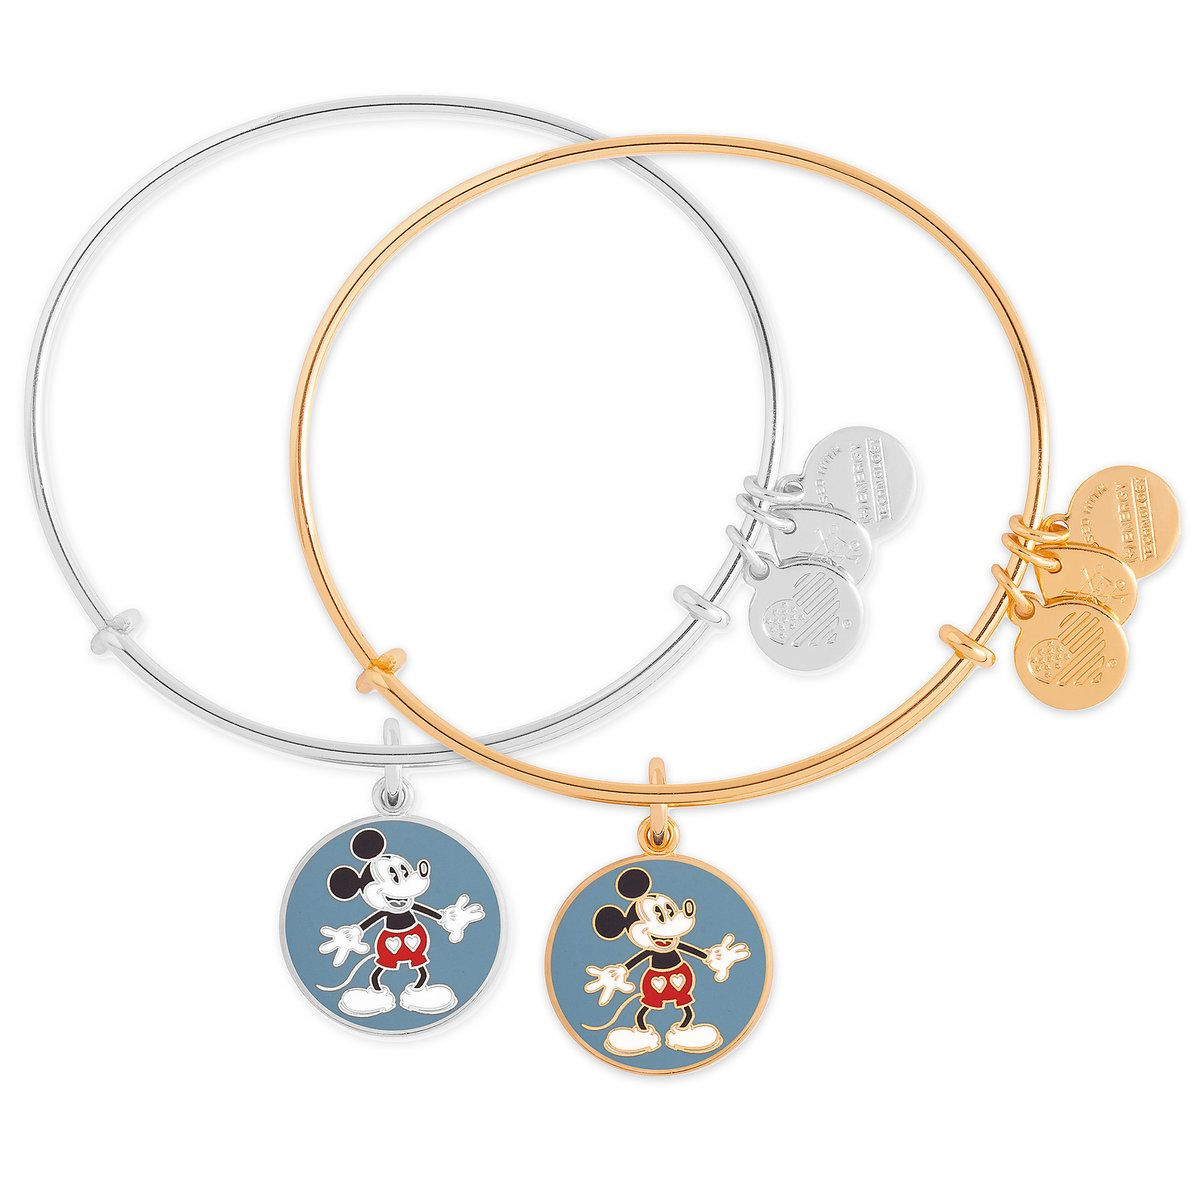 a6a8edc05 Mickey Mouse Heart Shorts Bangle - Alex and Ani in 2019 | Wishlist ...